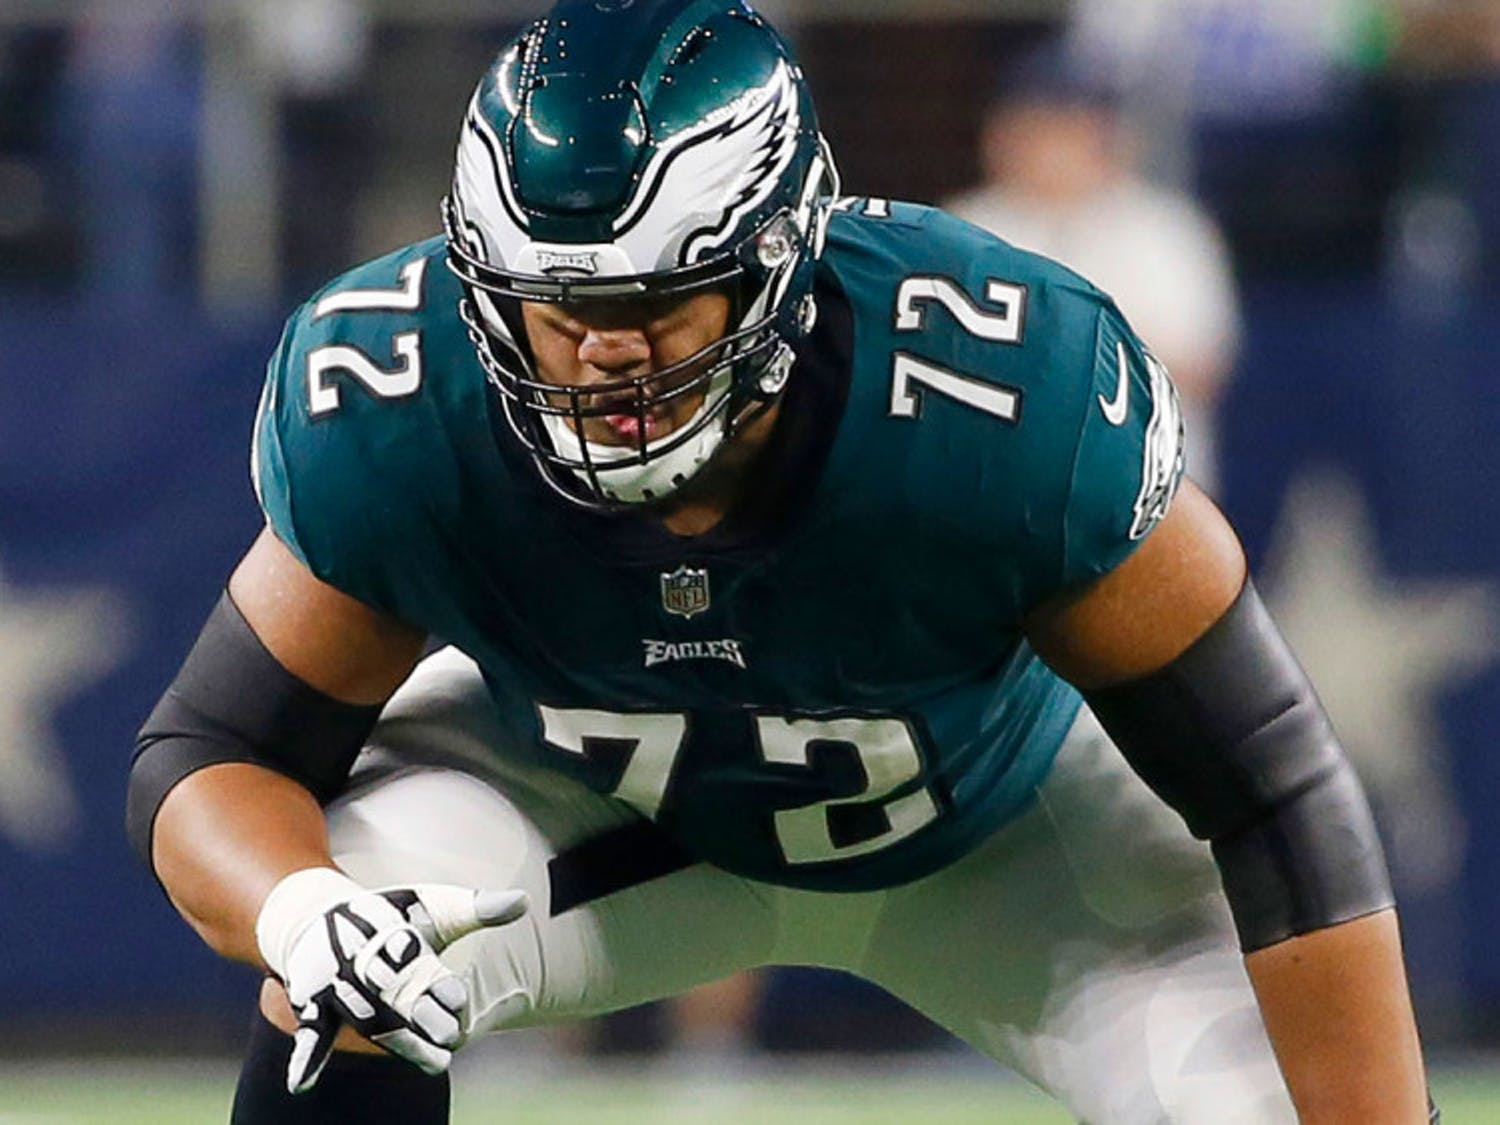 Eagles starting left tackle Halapoulivaati Vaitai has one of the most unique names of the players competing in Super Bowl LII.